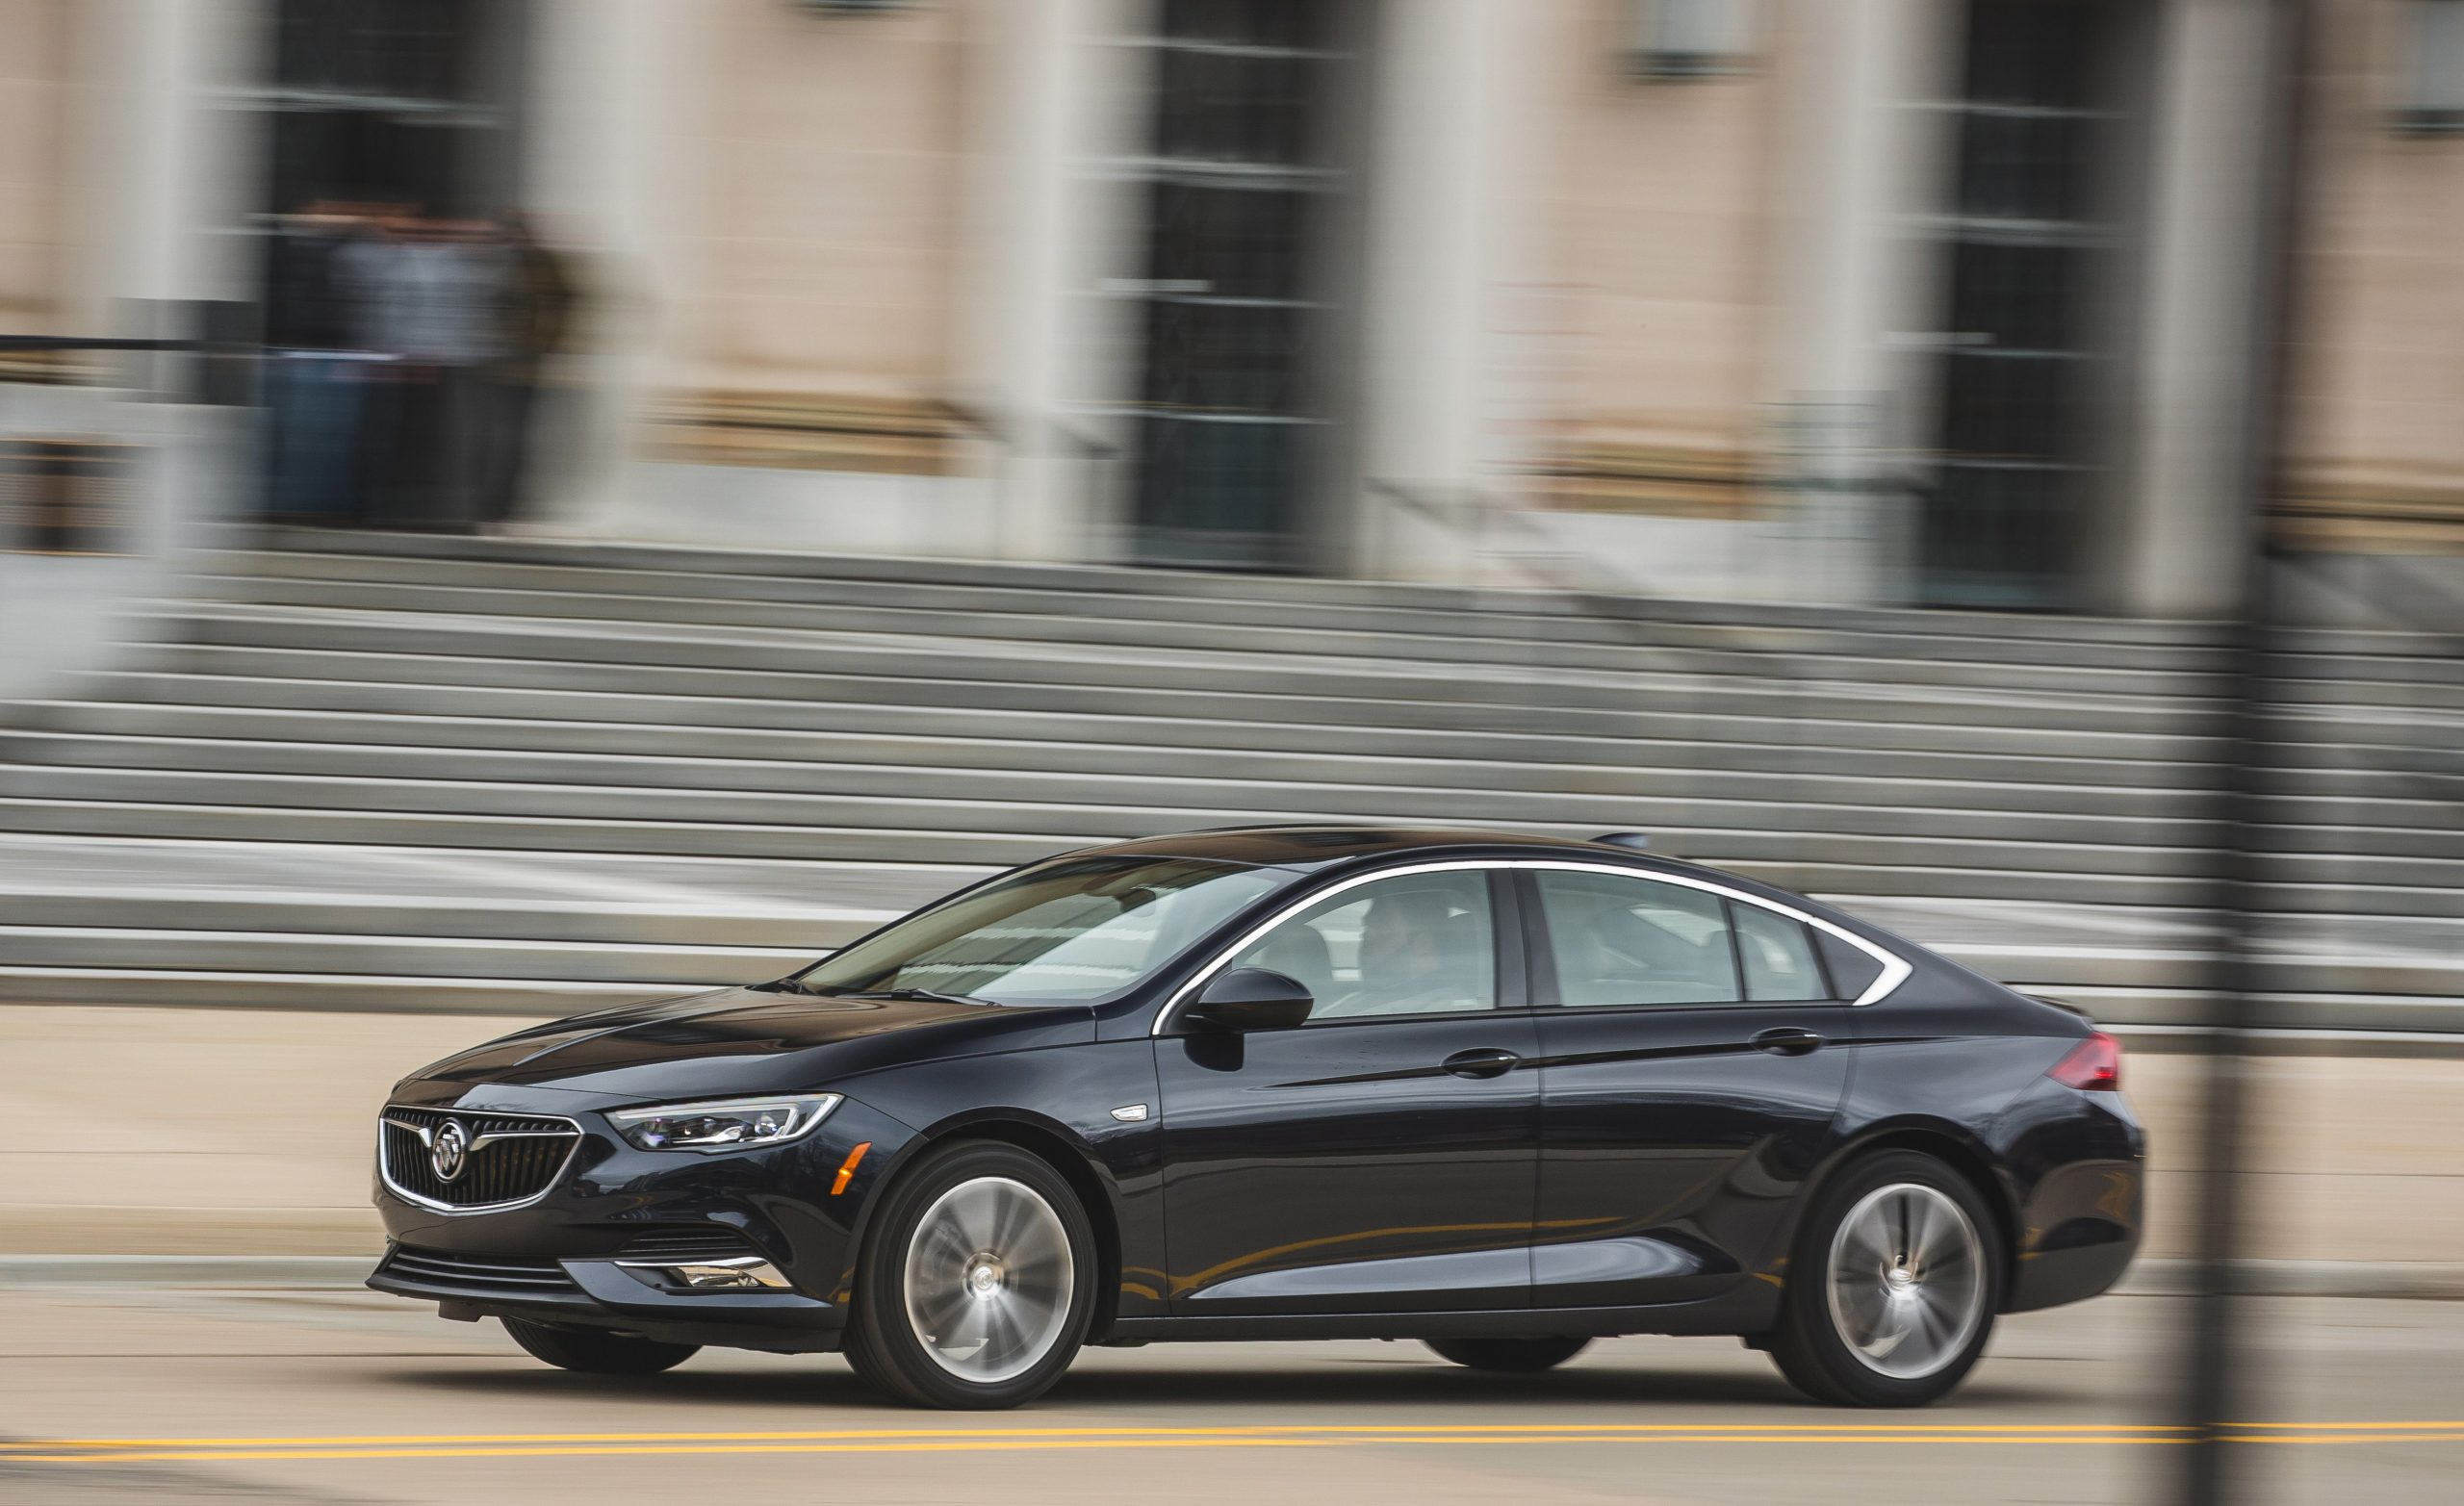 2019 Buick Regal Sportback Review, Pricing, And Specs New 2021 Buick Regal Sportback Review, Price, 0-60